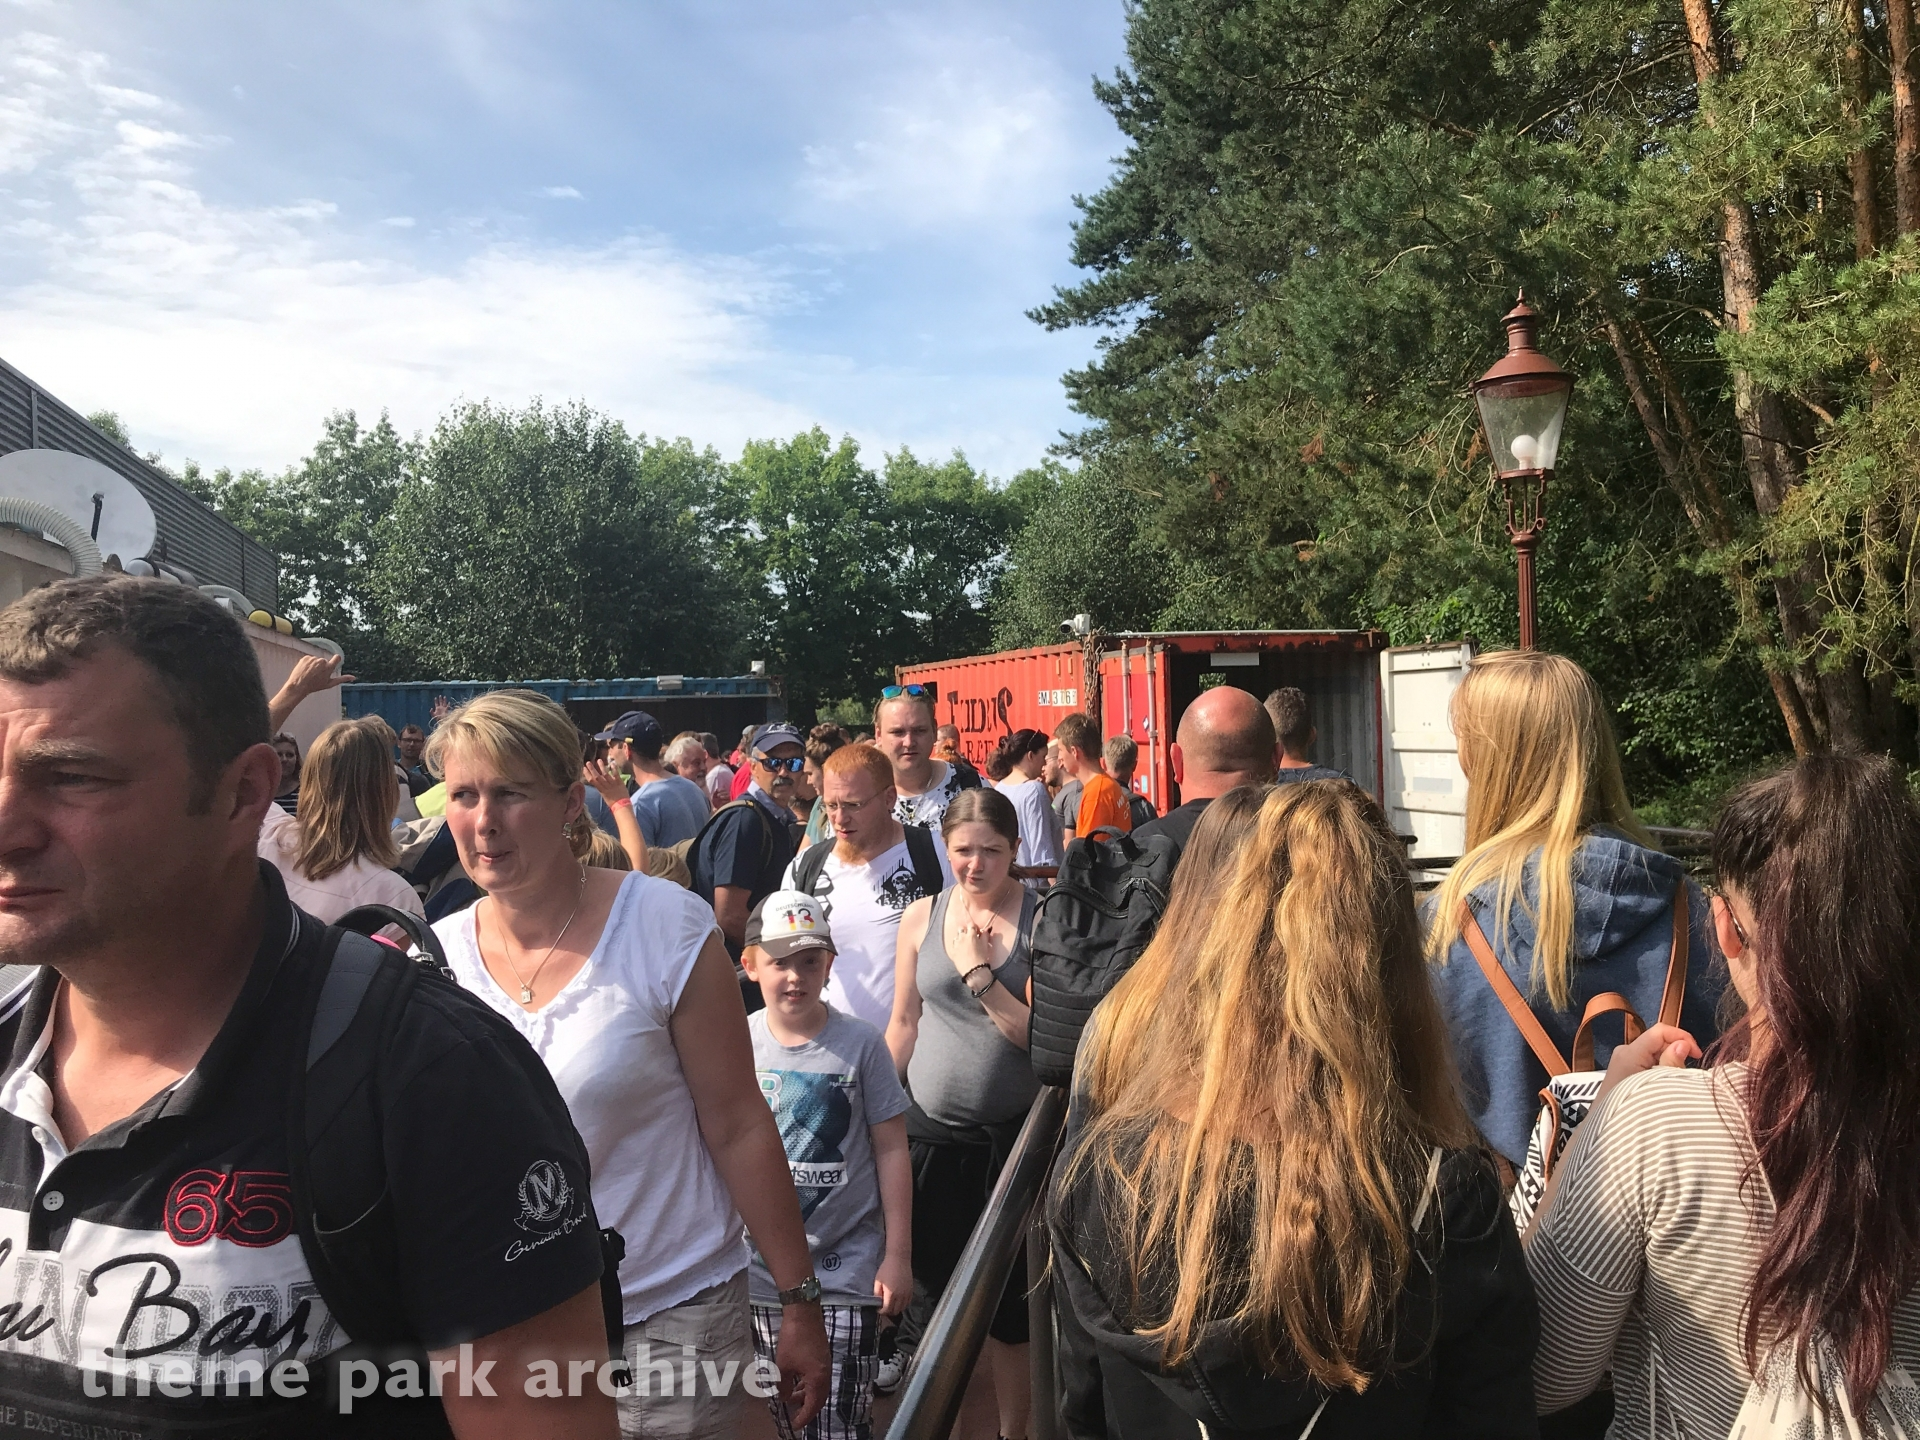 Ghostbusters 5D at Heide Park